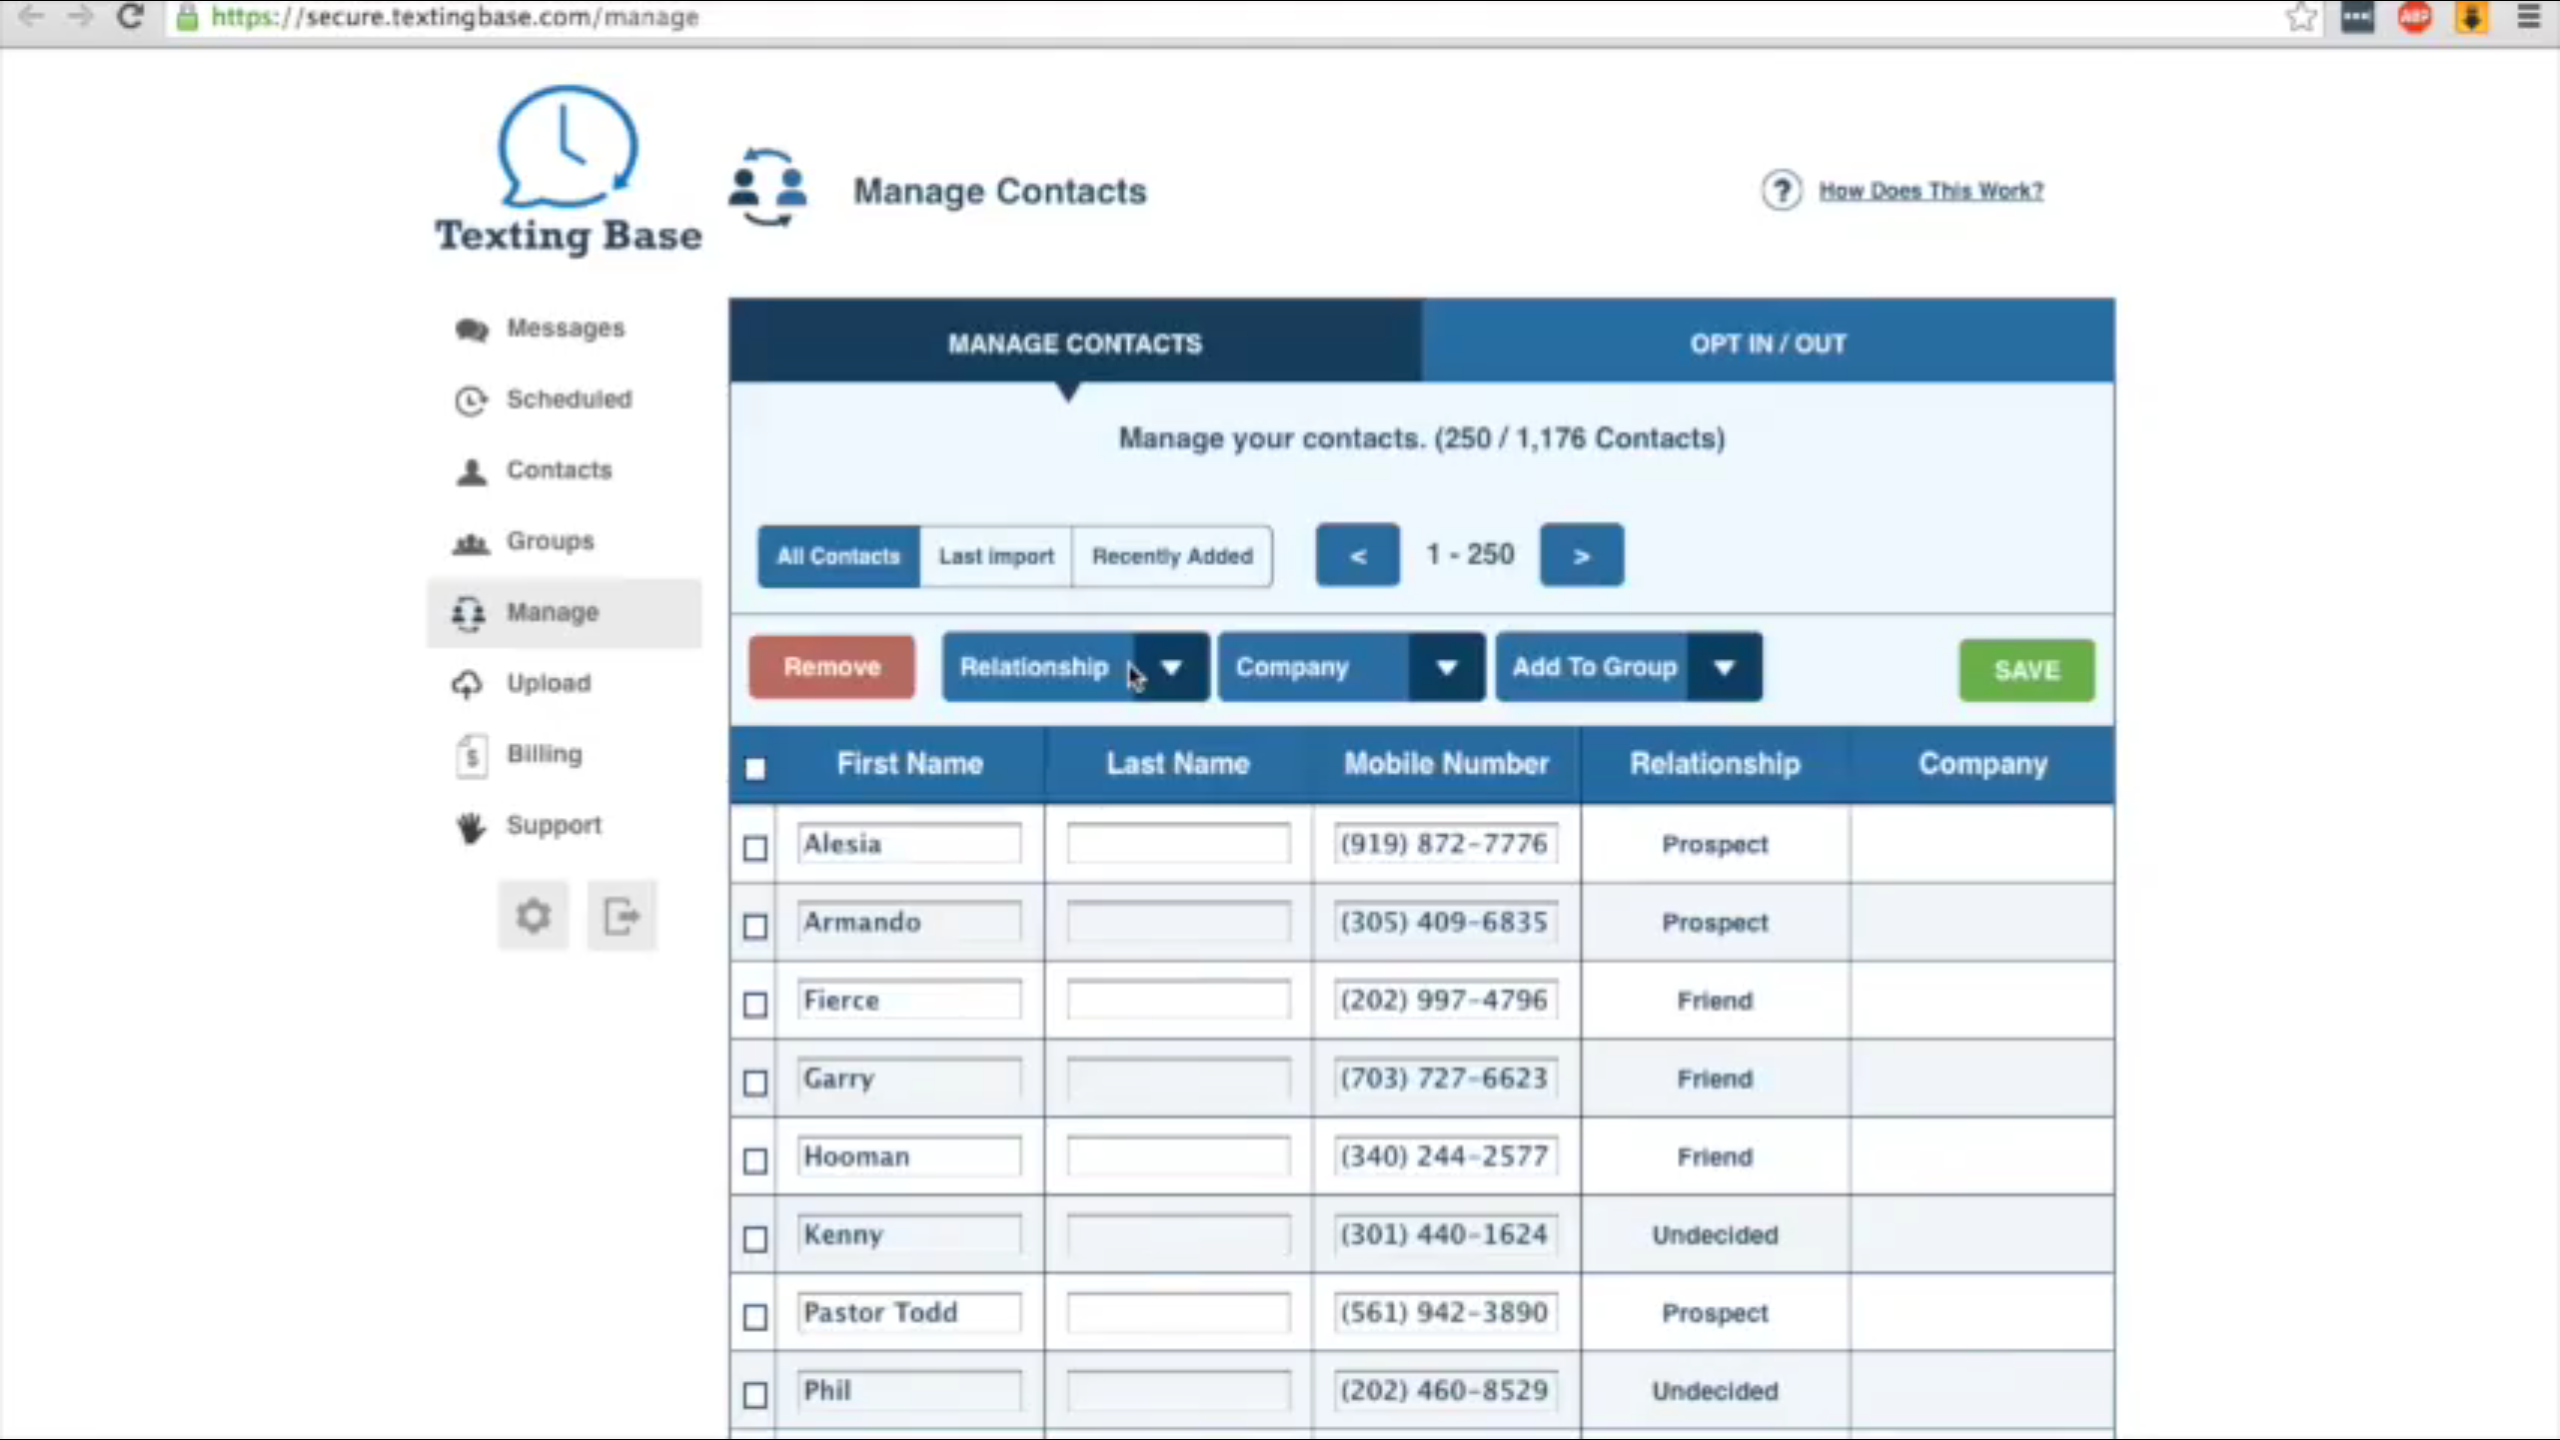 Once imported, contact records can be fully managed within the intuitive system